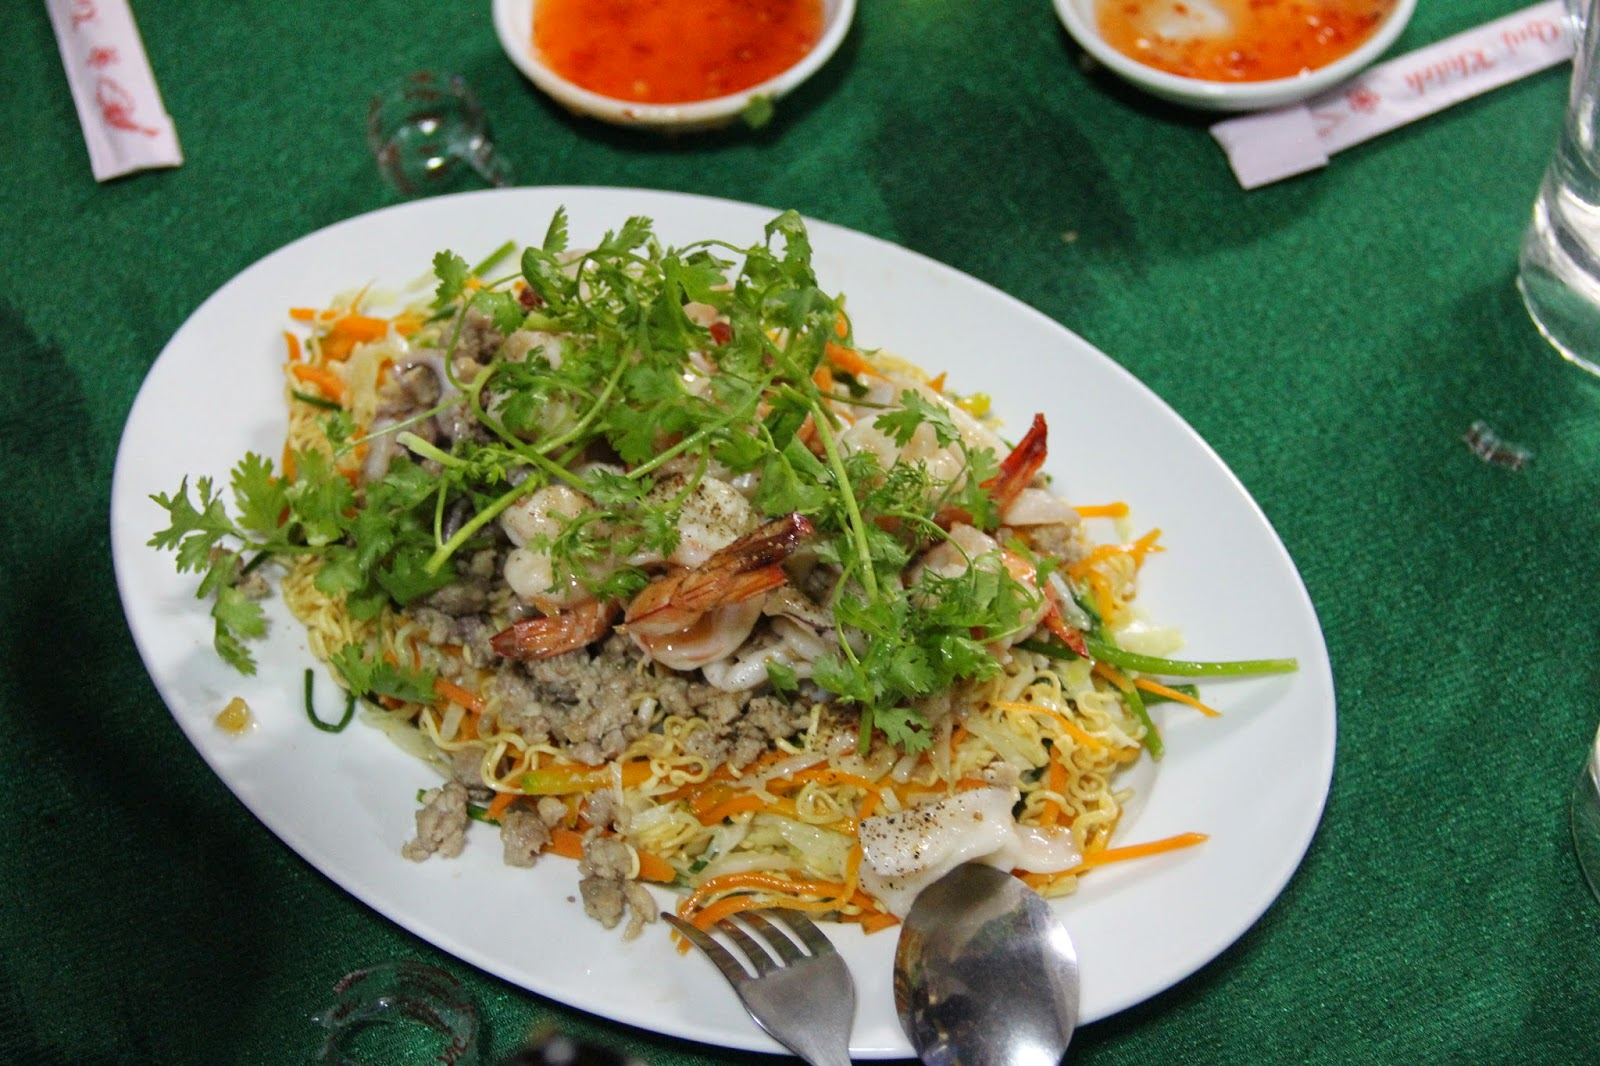 Delicious seafood and noodles dish for dinner at a private home in Chau Doc, Vietnam.